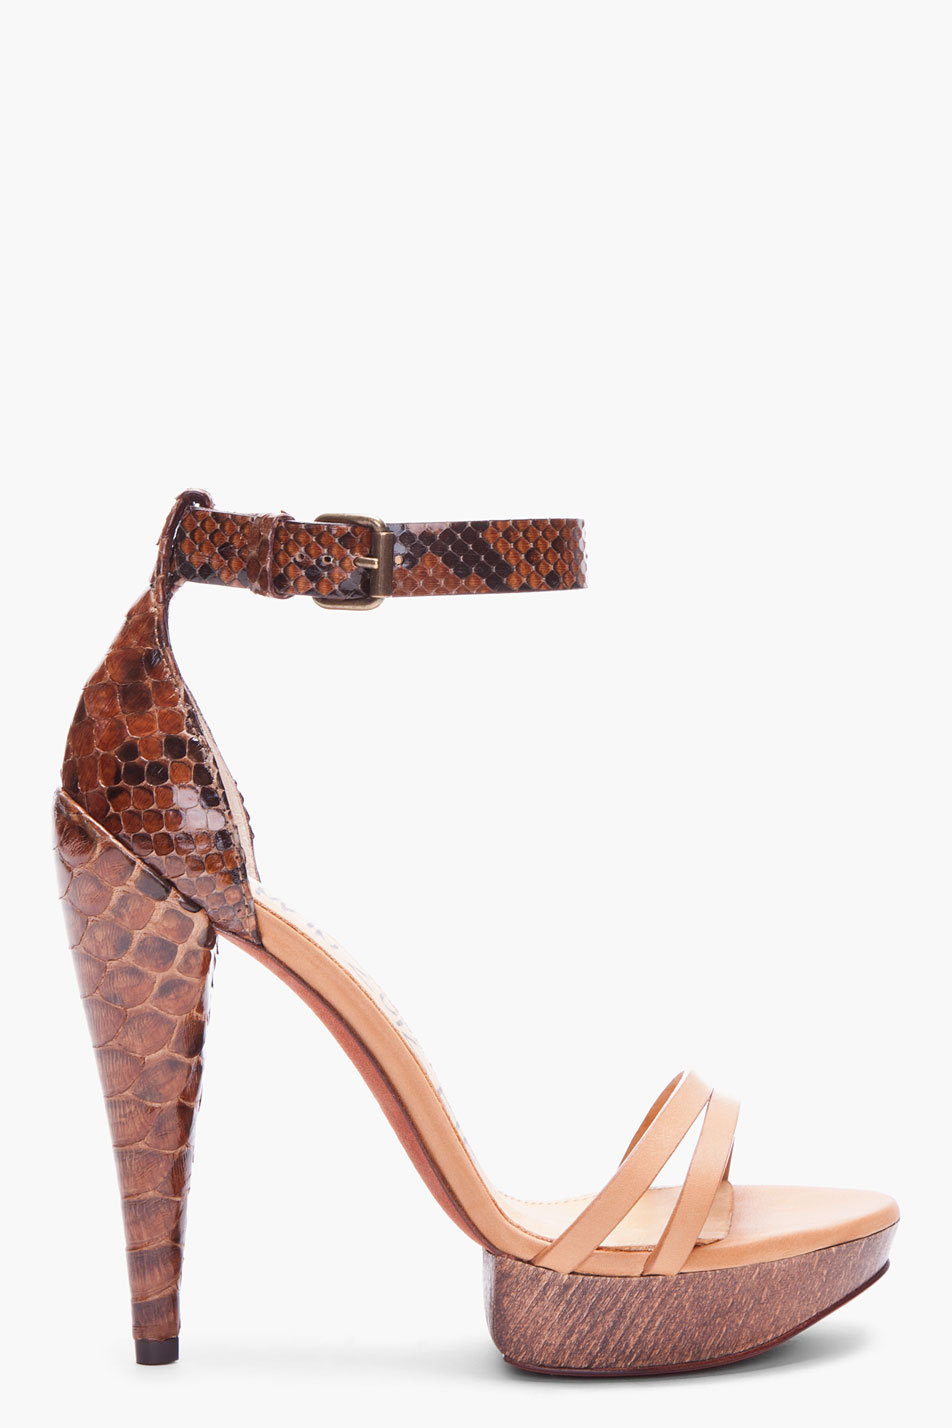 "LANVIN // Brown Python Skin Heels Scaled python skin heels in dark brown, black and beige. Open toe. Adjustable strap at ankle. Tone on tone stitching. Approx. 1.25"" platform, 5"" heel. Upper: 50% python skin, 50% leather. Sole: 100% suede. http://www.ssense.com/"